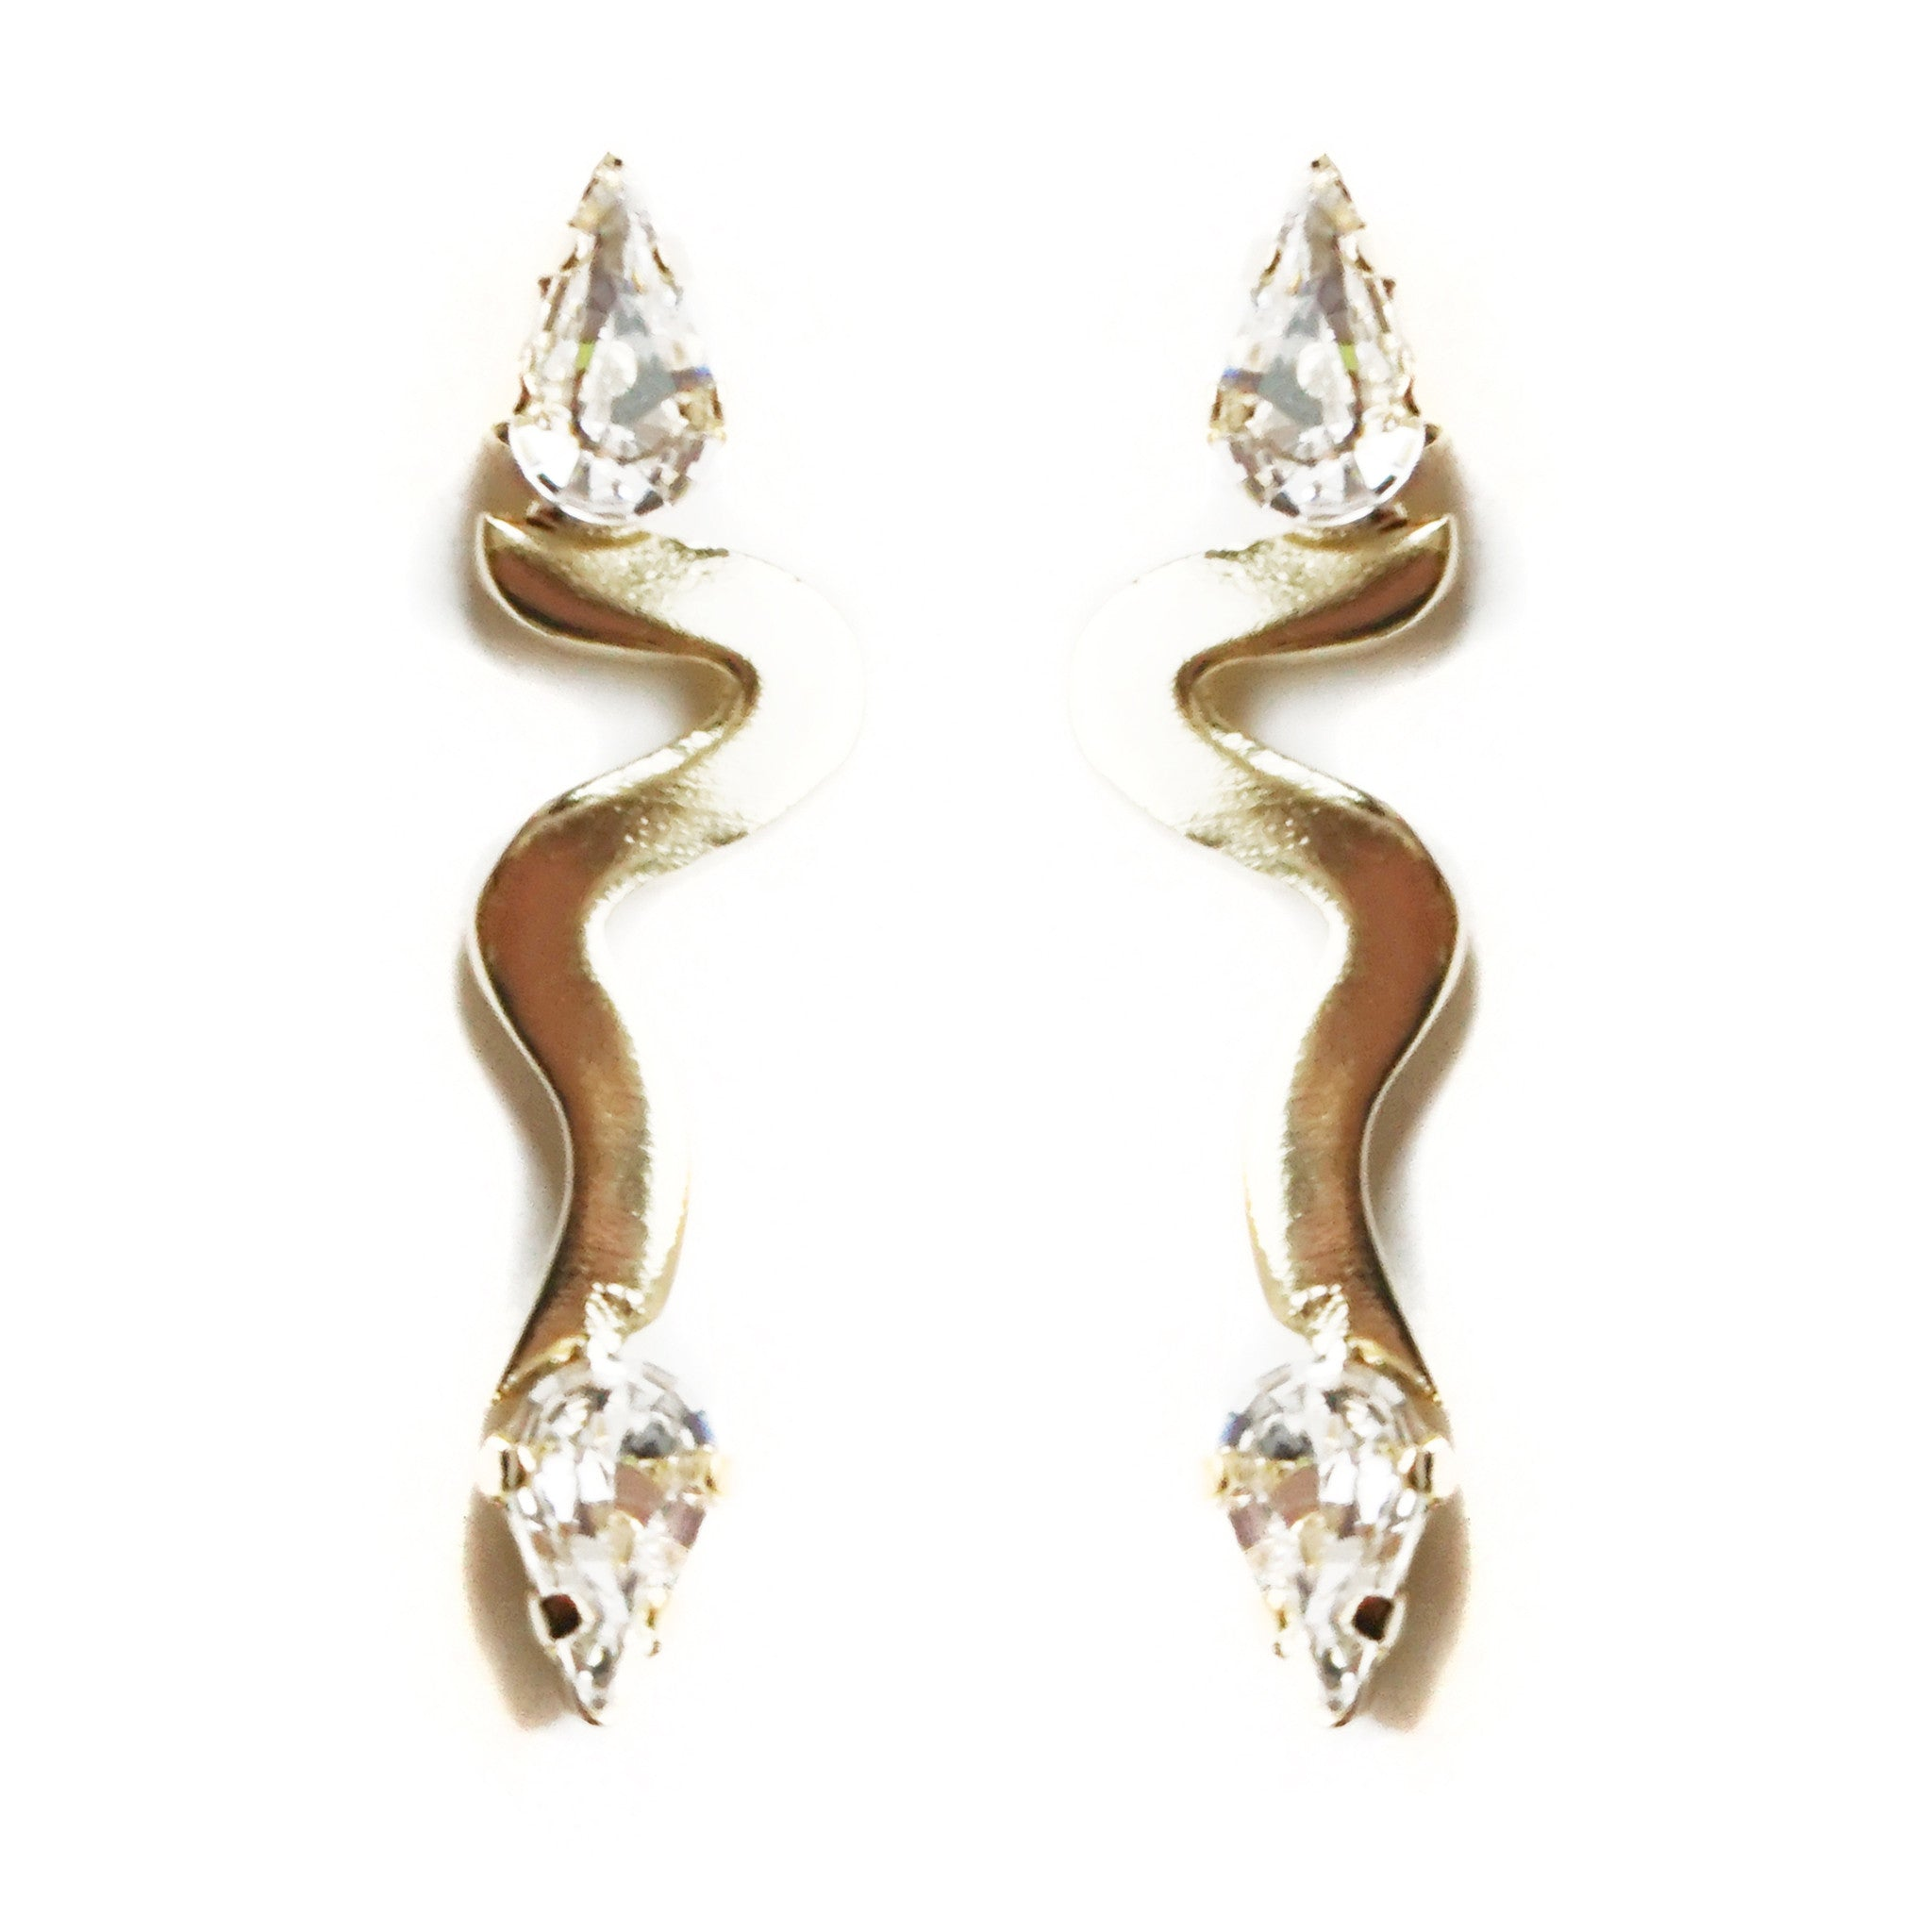 CAROLYN COLBY - GOLD ZIG-ZAG EARRINGS WITH GEMS